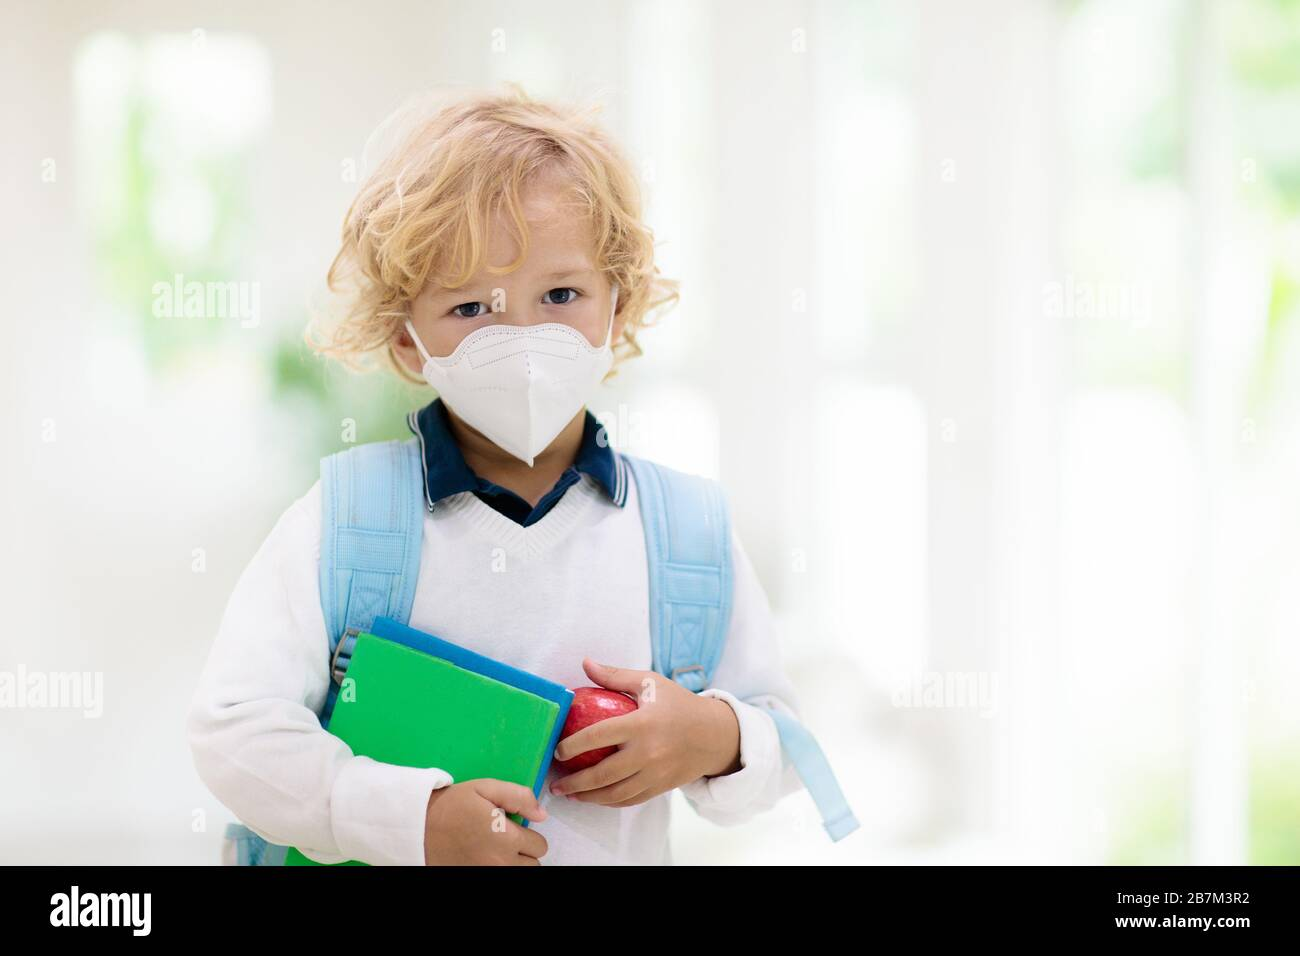 surgical mask kids